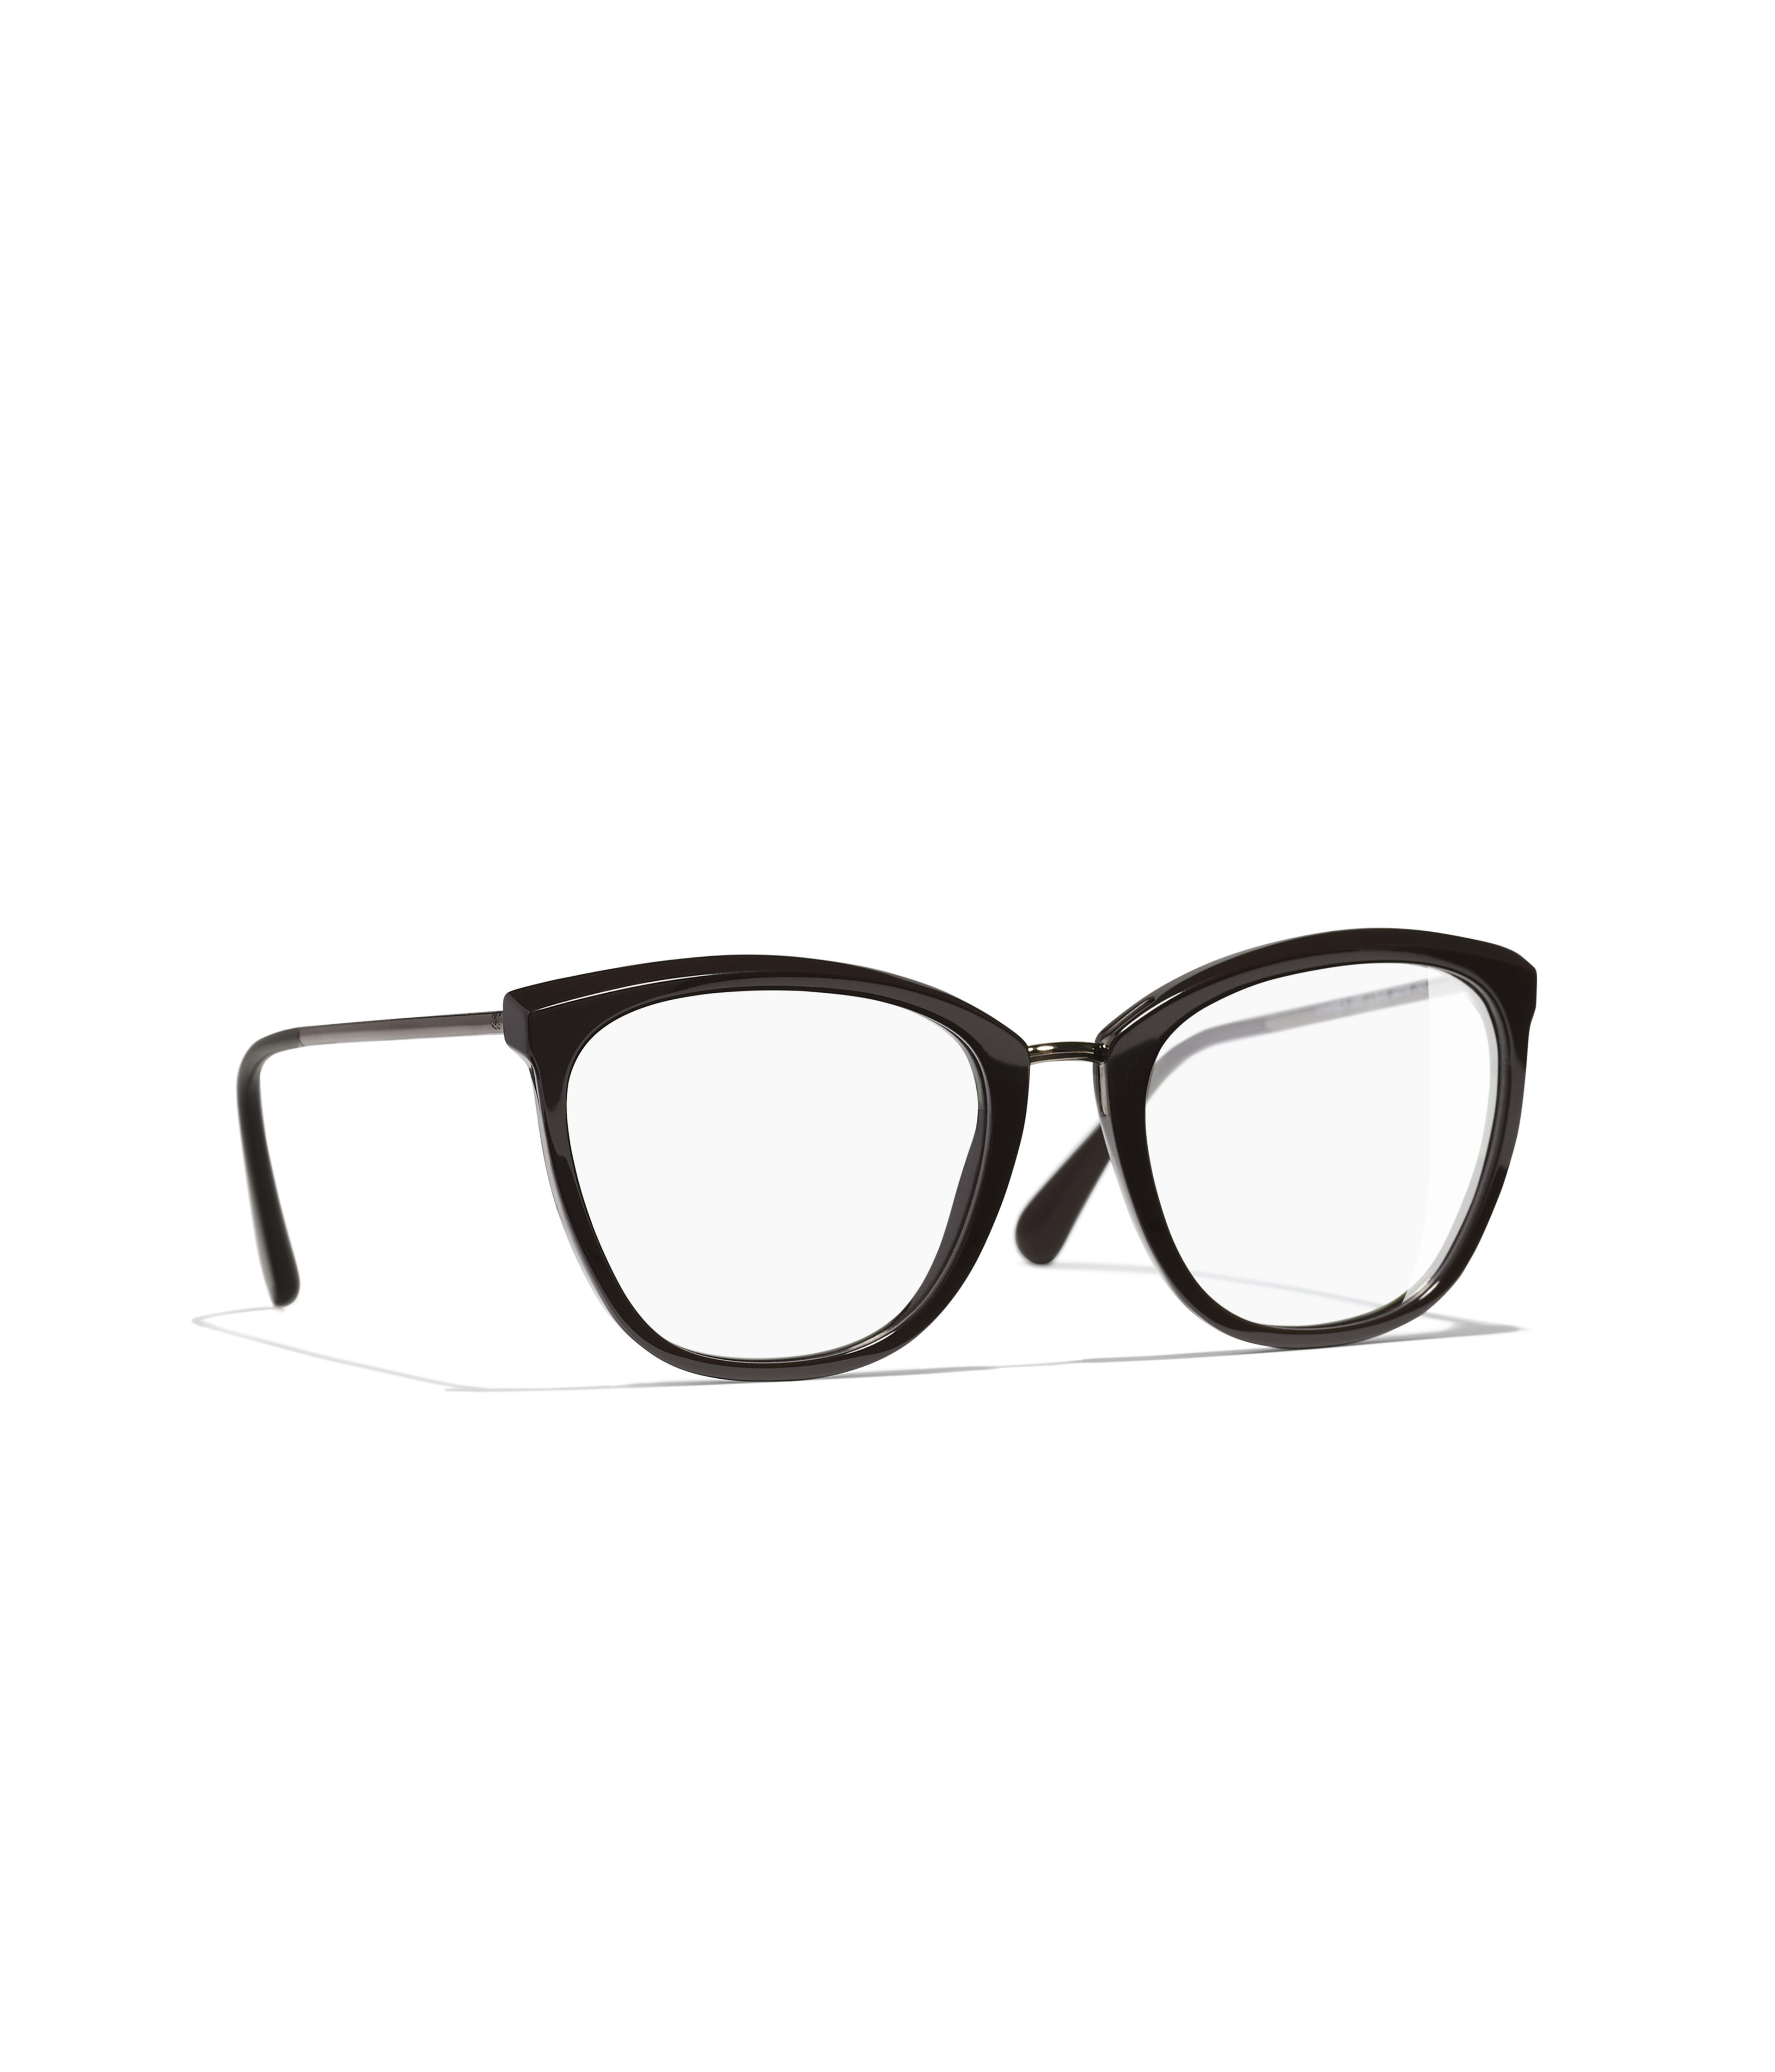 e846aed72600b Butterfly Eyeglasses Ref. 3381 1648